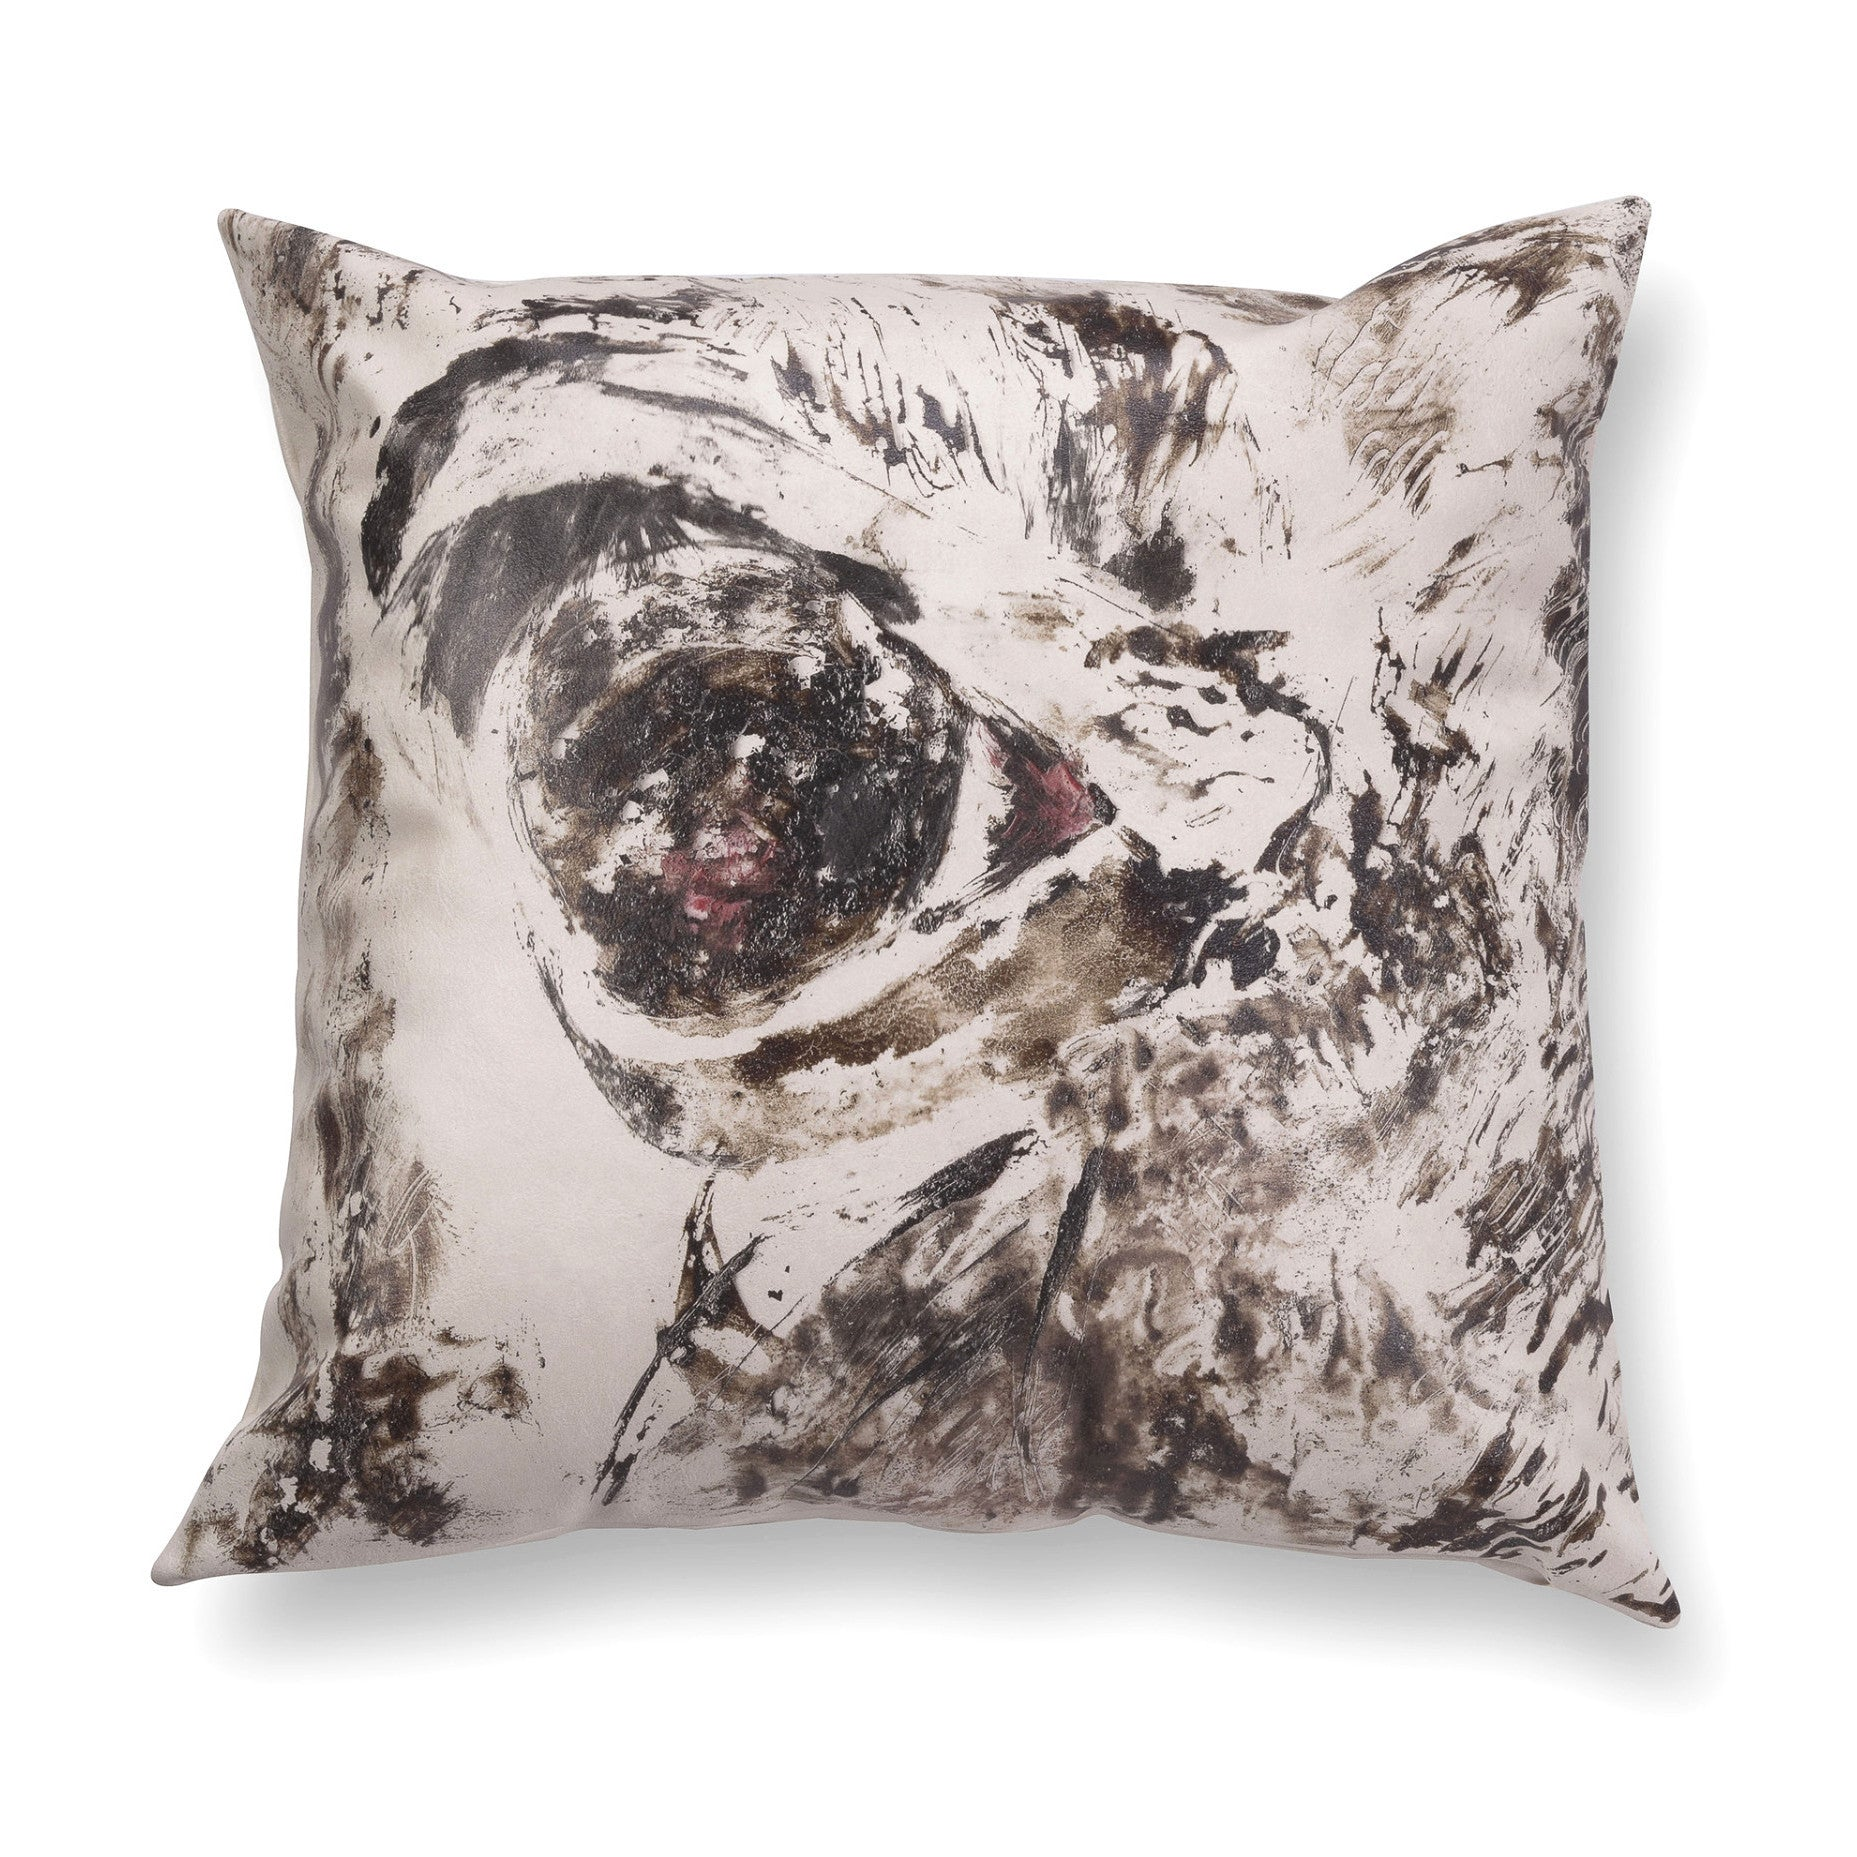 Illustrated contemporary pillow - Gaze 3